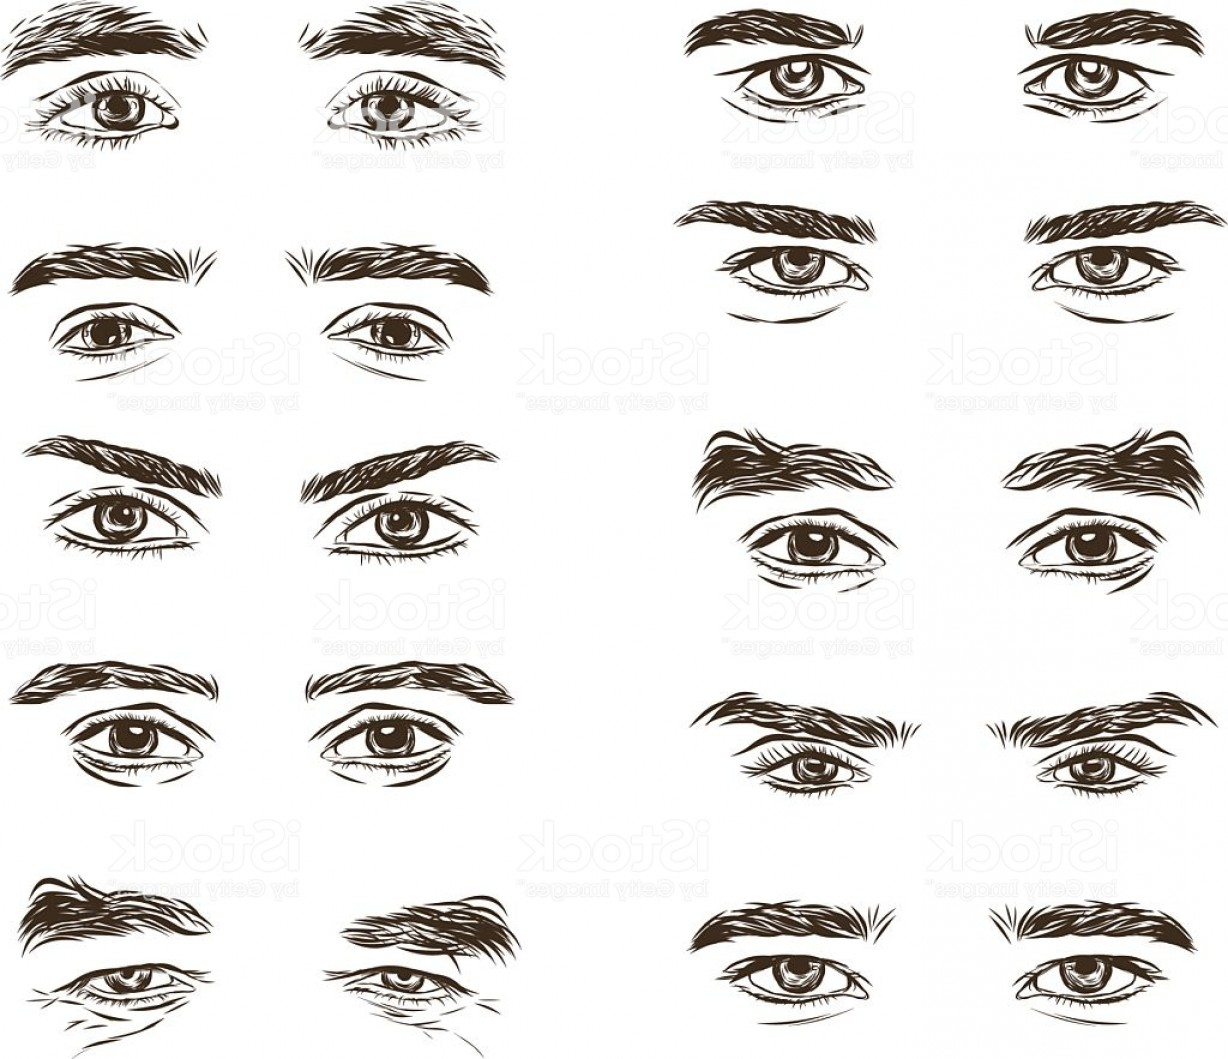 Male Eyes Vector Graphic: Vector Part Of The Male Person S Eyes And Eyebrows Gm